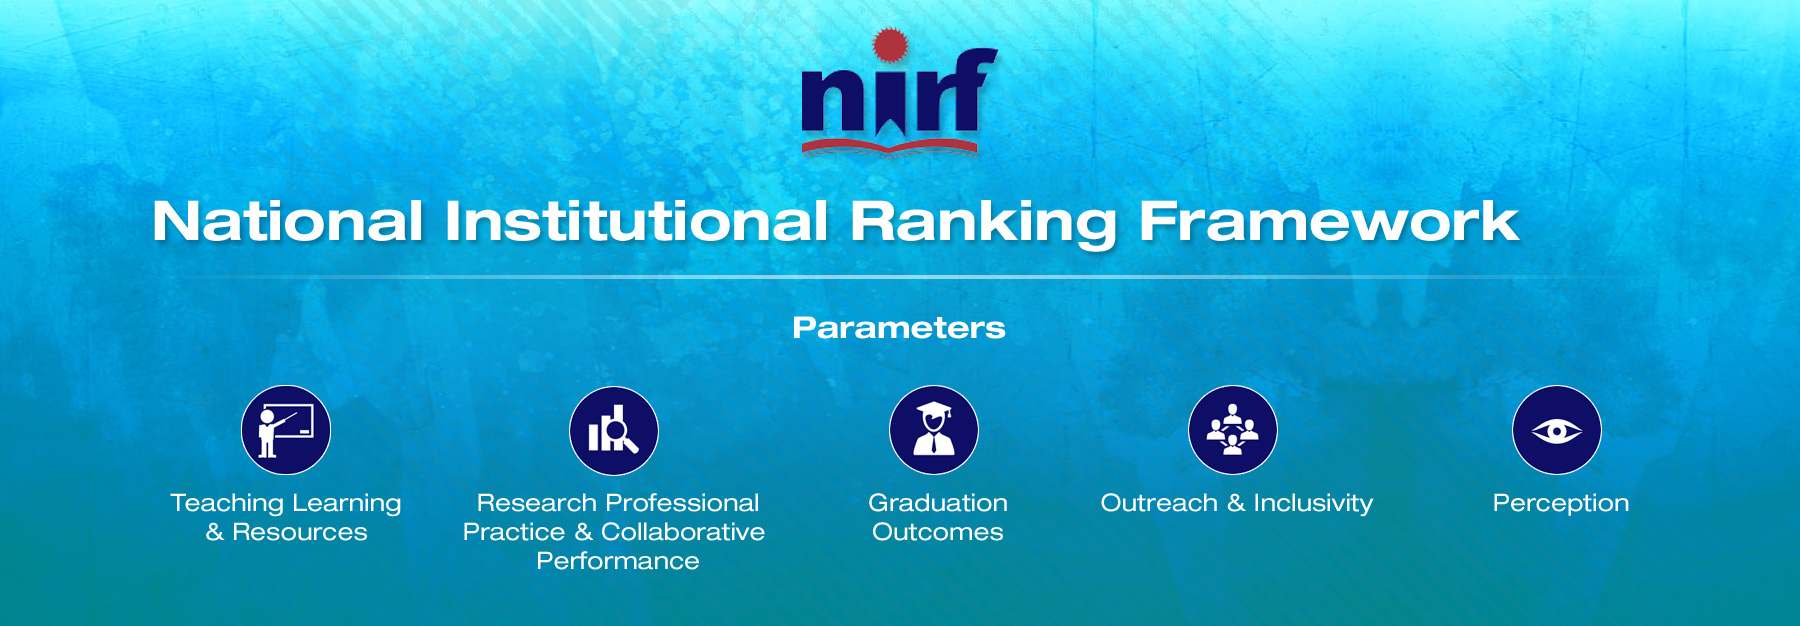 nirf law ranking, nirf law school rankings 2018, nirf law college rankings, nirf law ranking 2018, nirf best law colleges